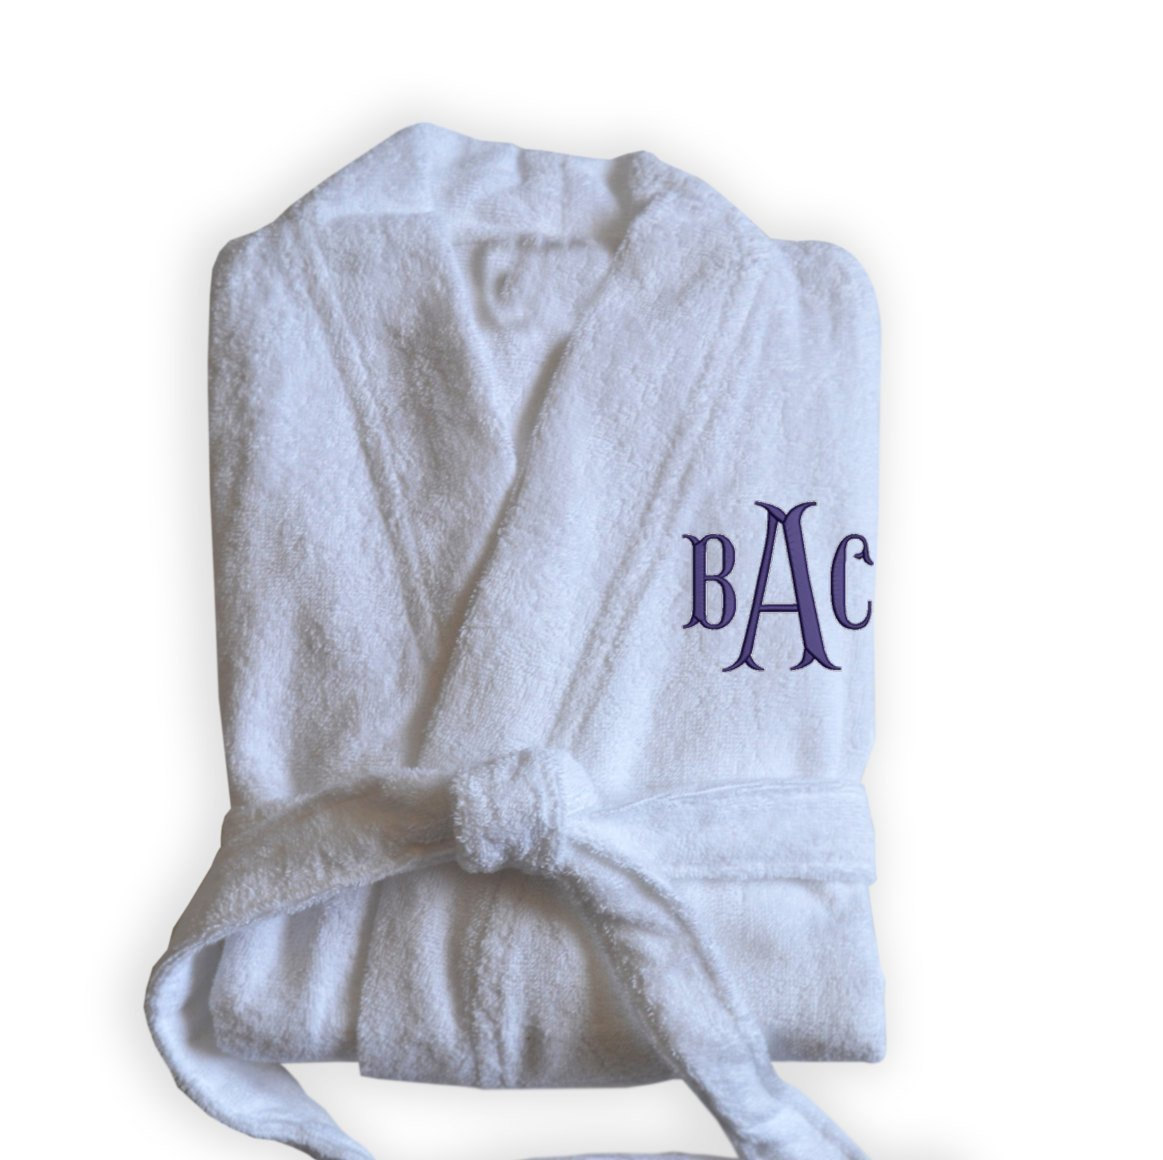 Amore Beaute Handcrafted Personalized White Bath Robes -Monogrammed Spa Robe -Custom Bridesmaid Gift -With Embroidery -Gift -Wedding Gift -Custom Robe -Christmas Gifts White_Bath_Robe_Monogram